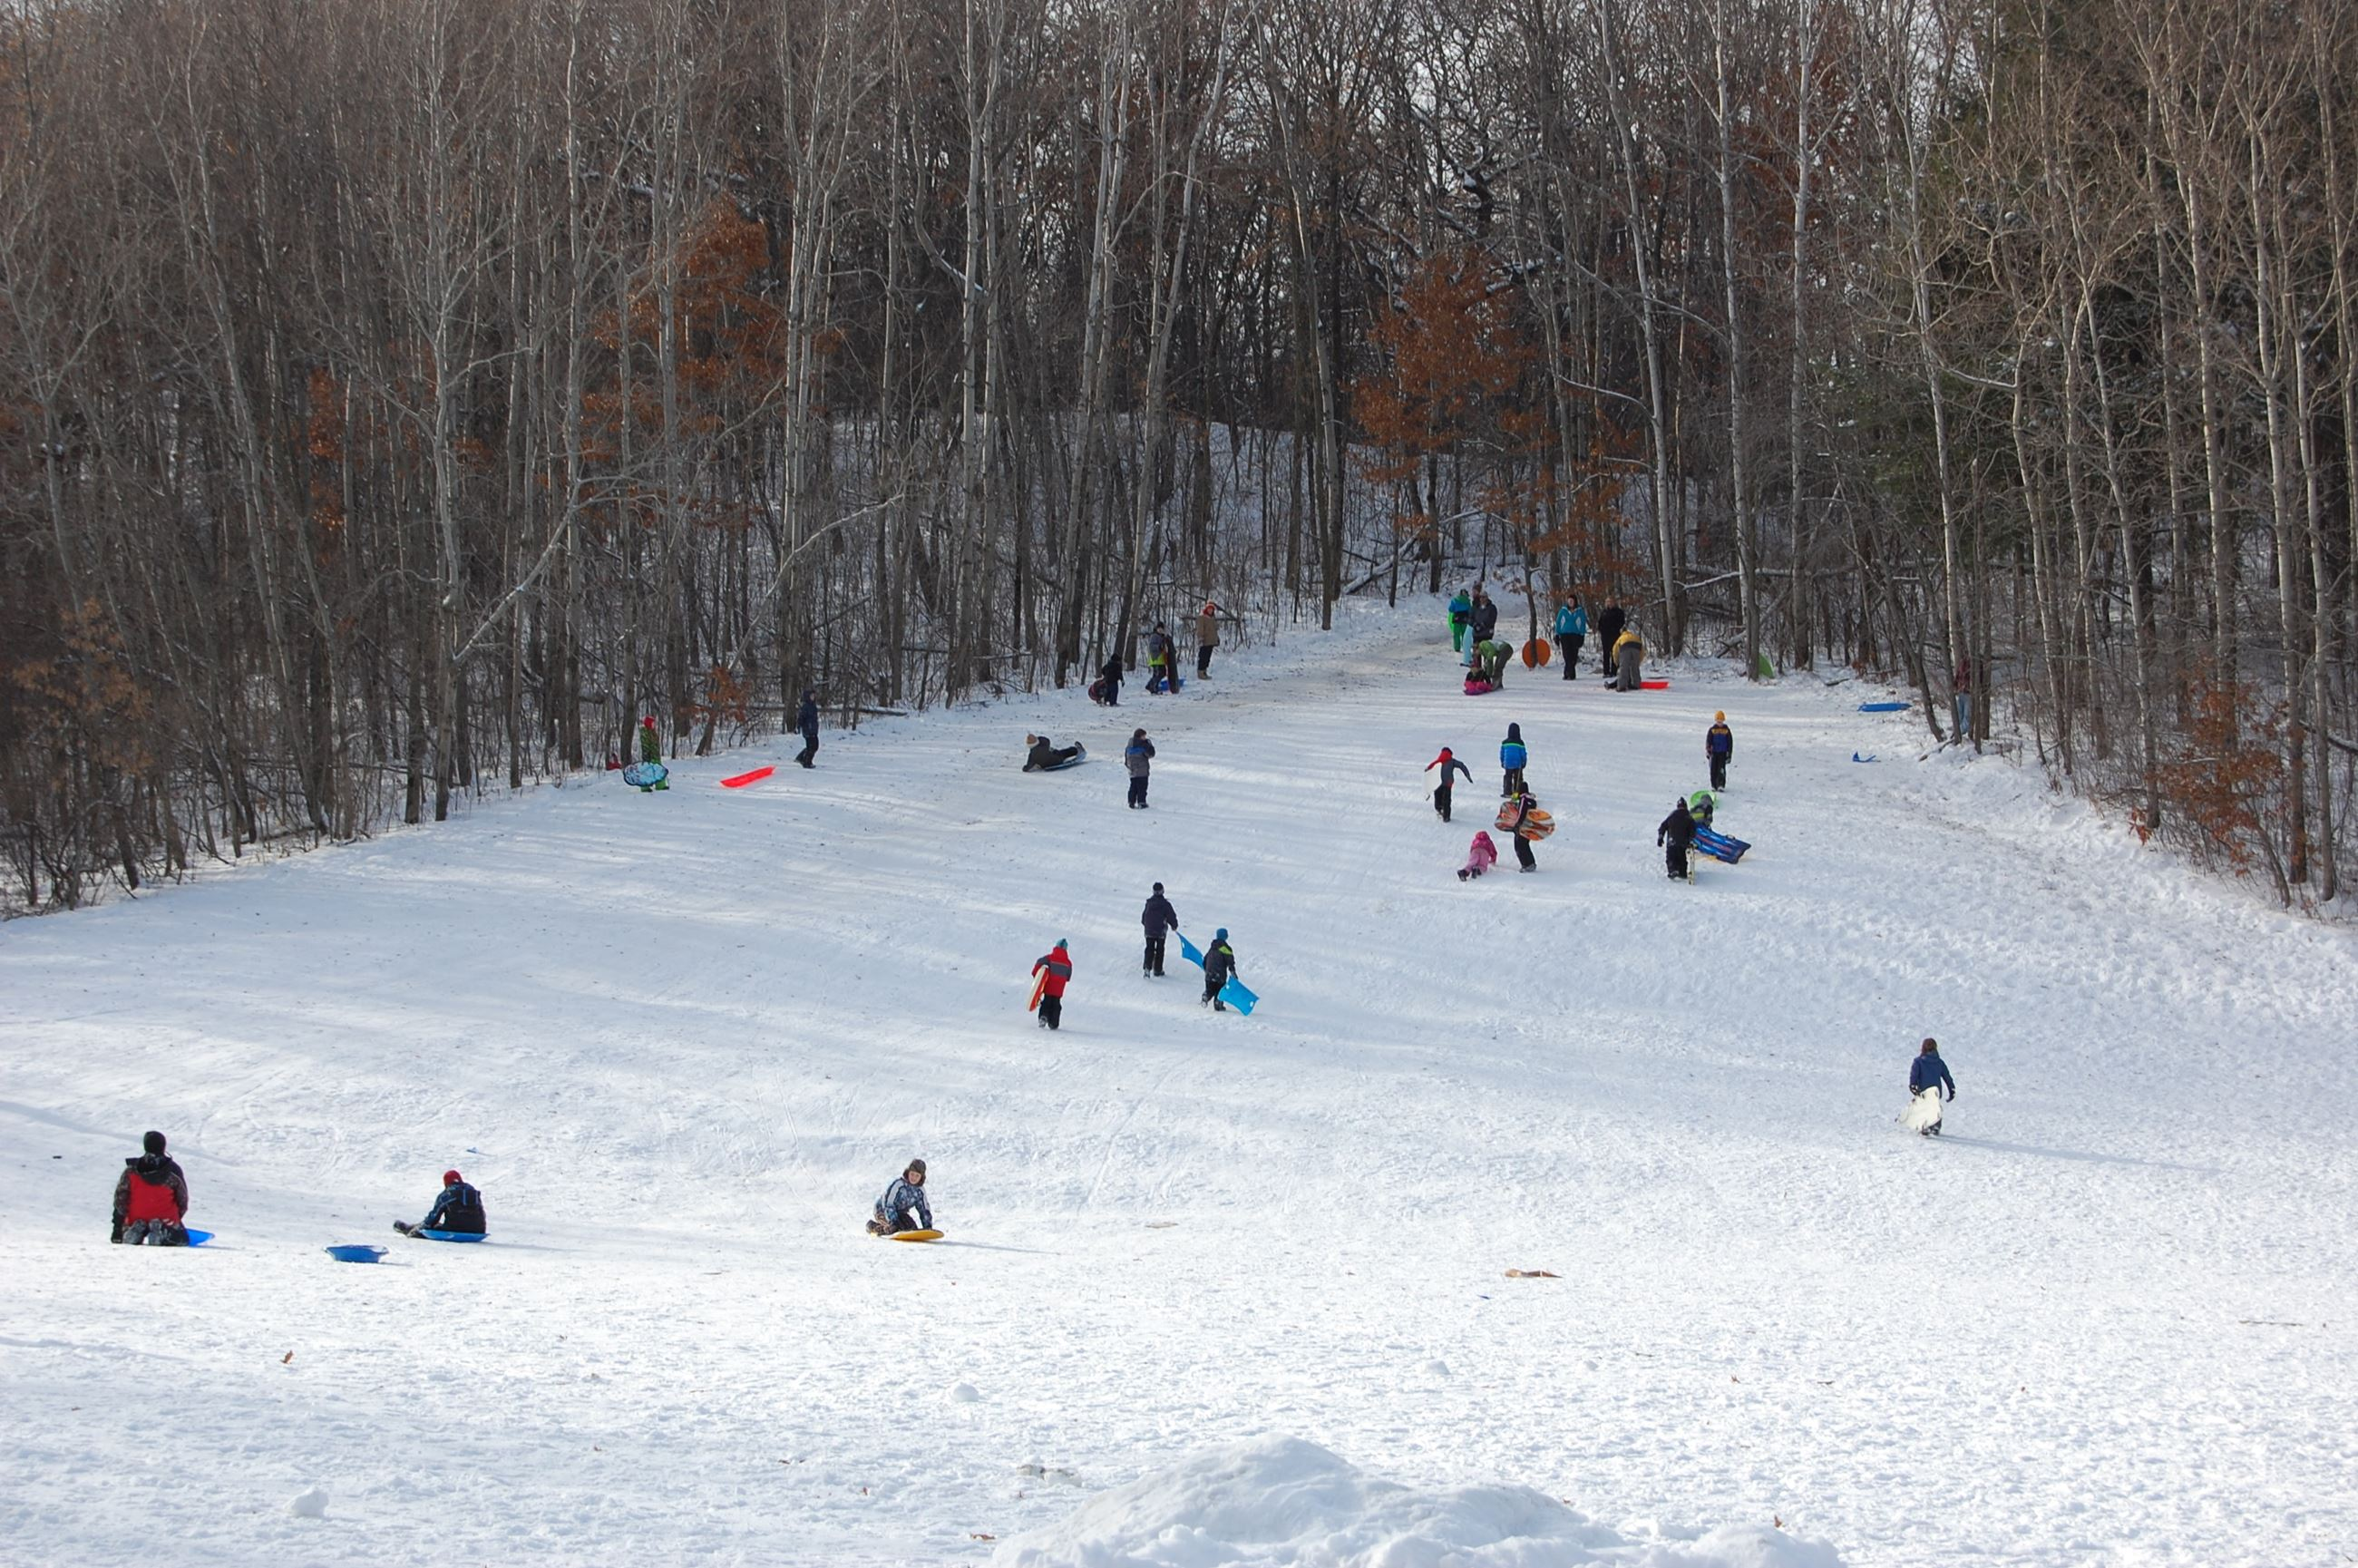 South Valley Park Sledding Hill